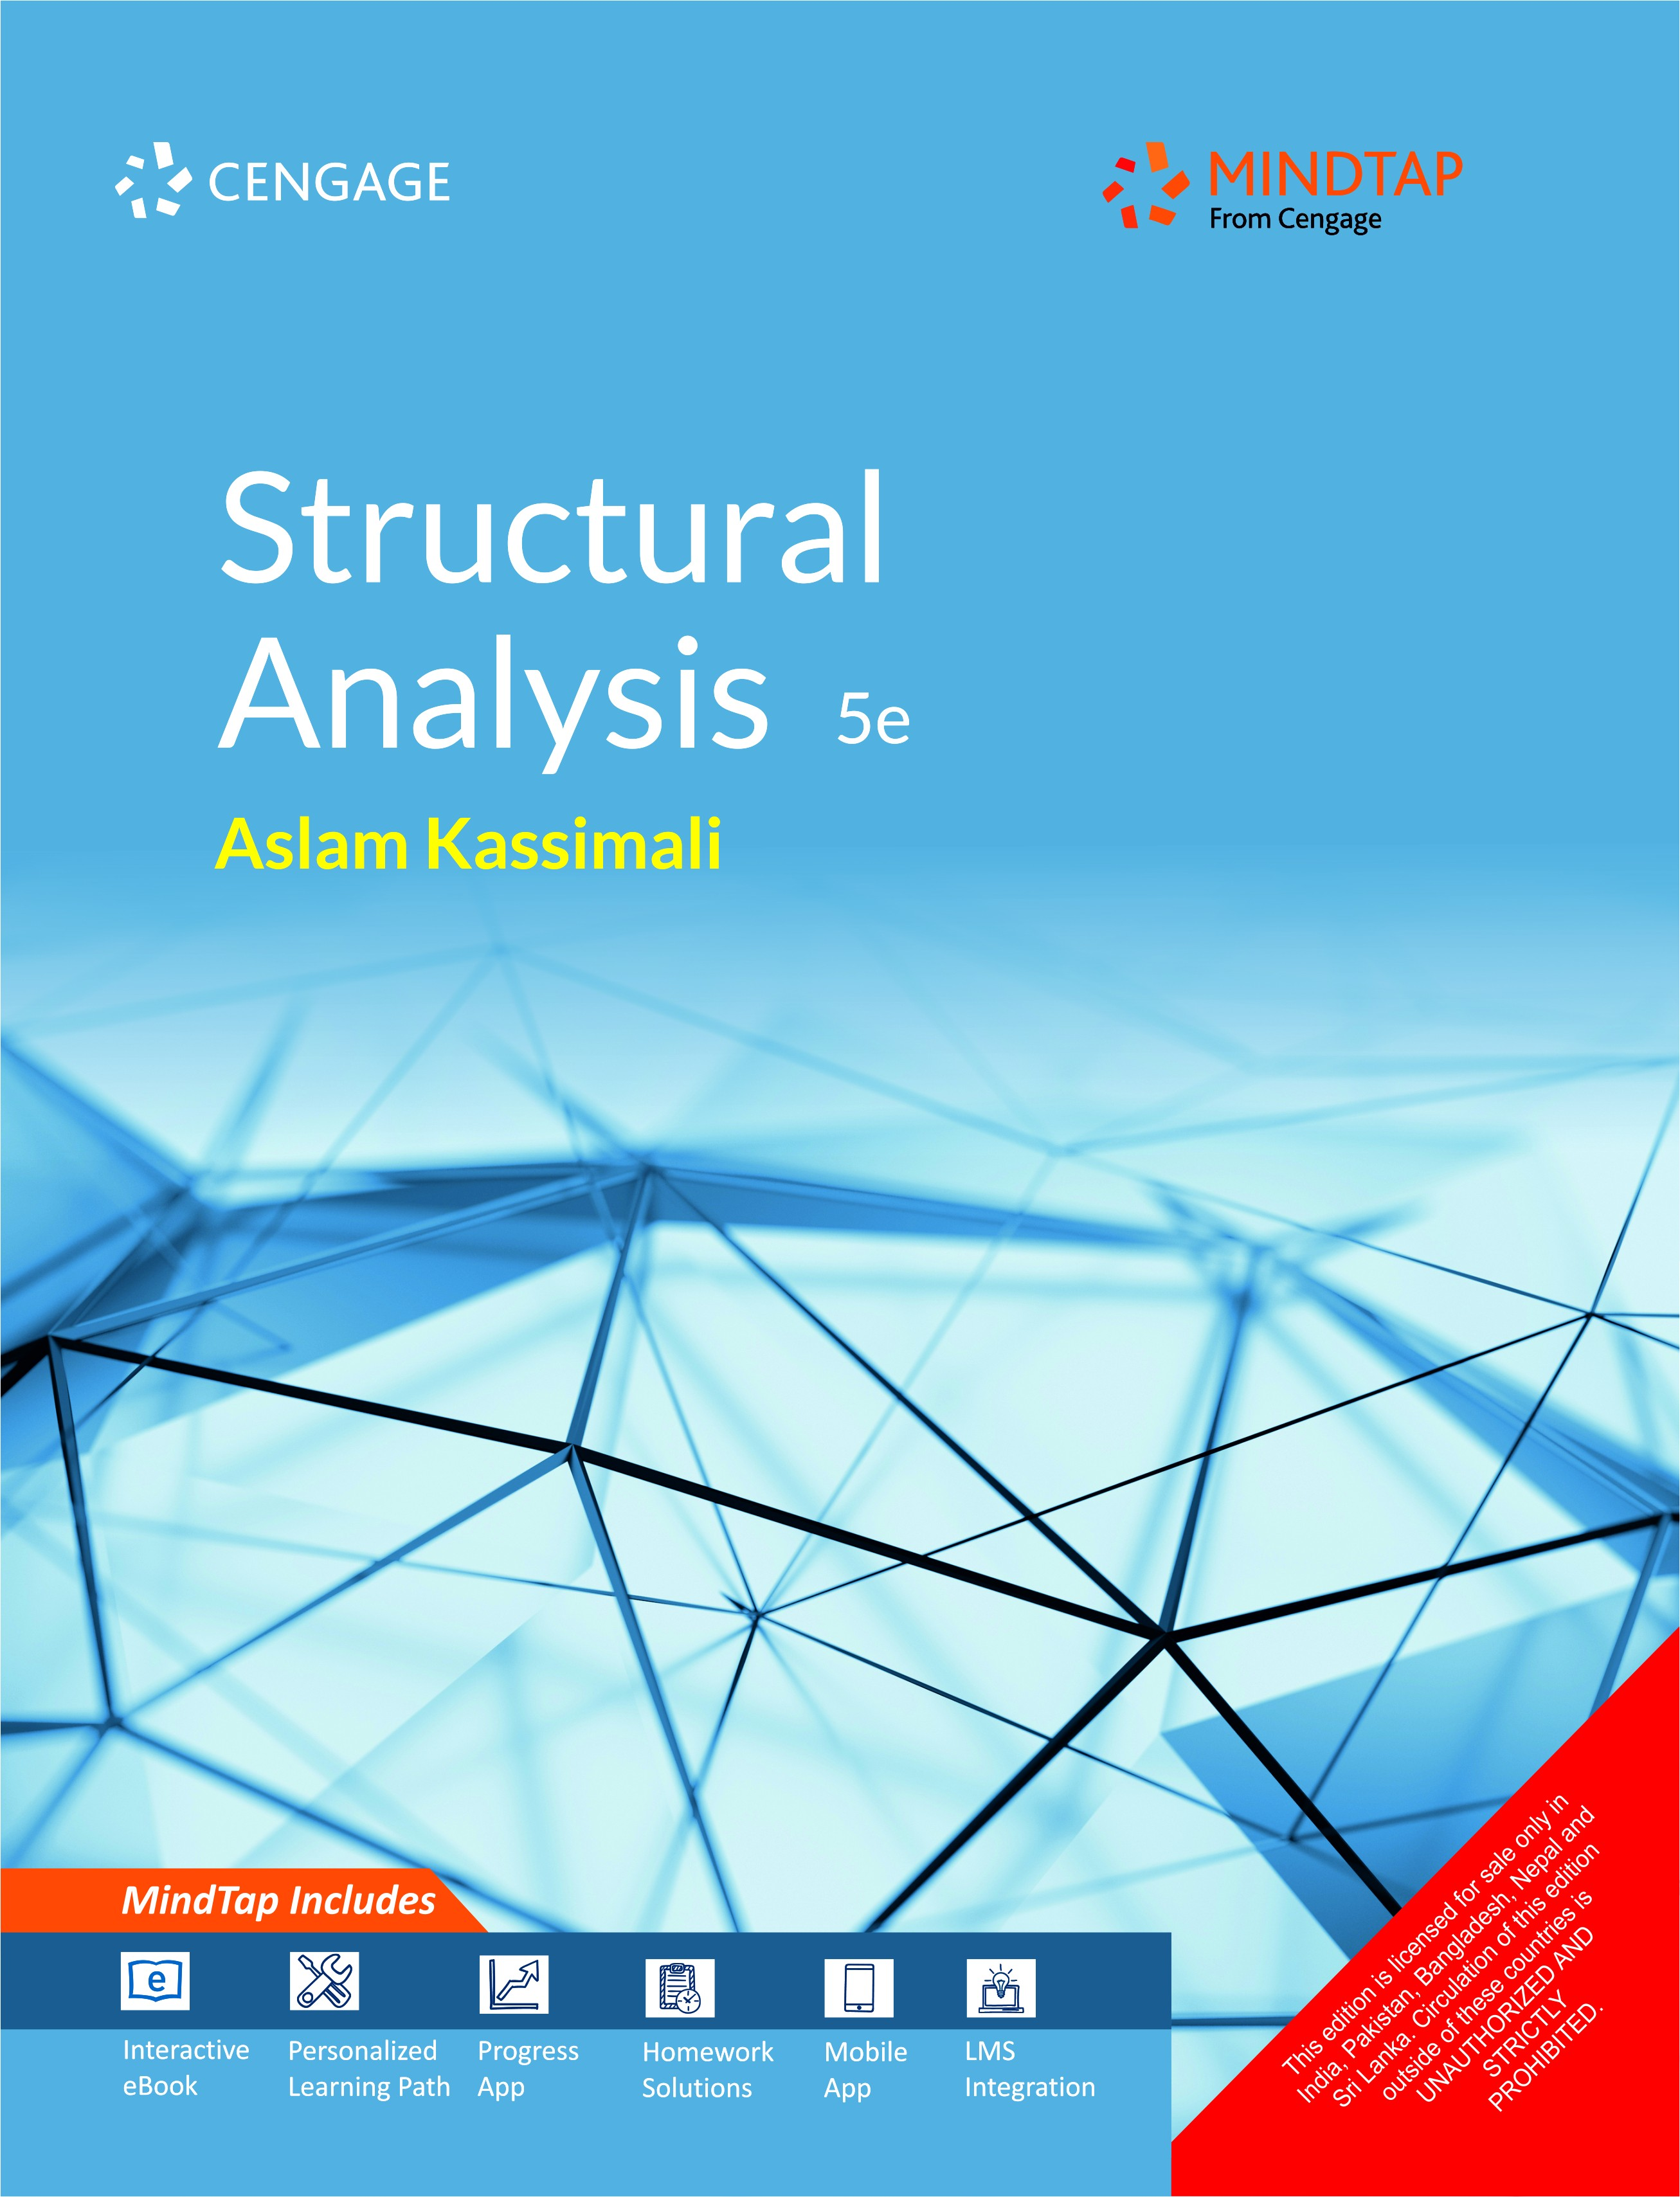 Cengage structural analysis with mindtap fandeluxe Gallery